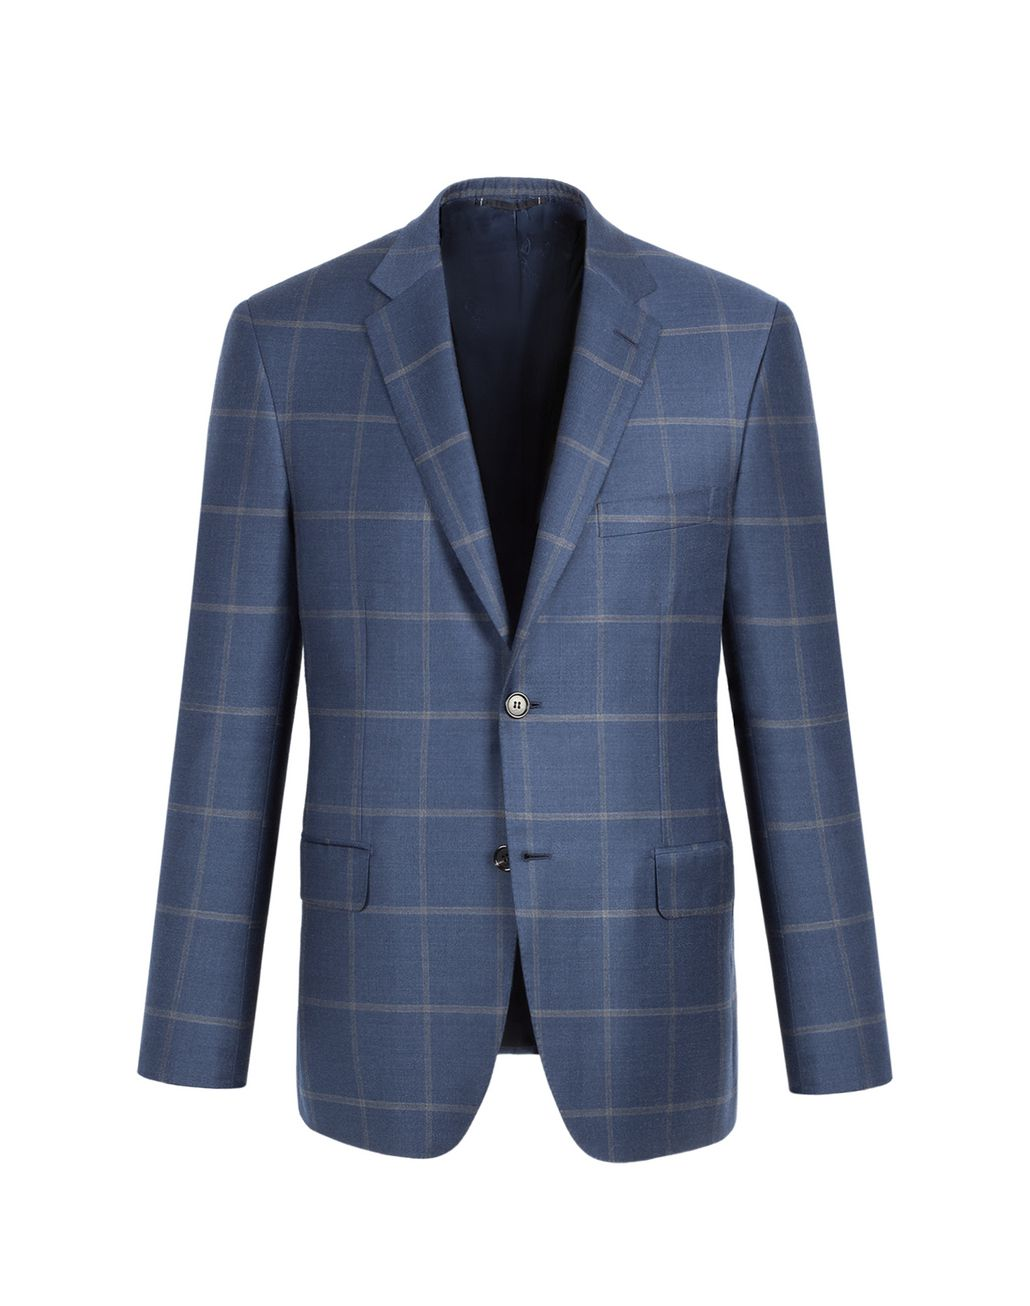 BRIONI Blue and Grey Overcheck Ravello Jacket Jackets U f